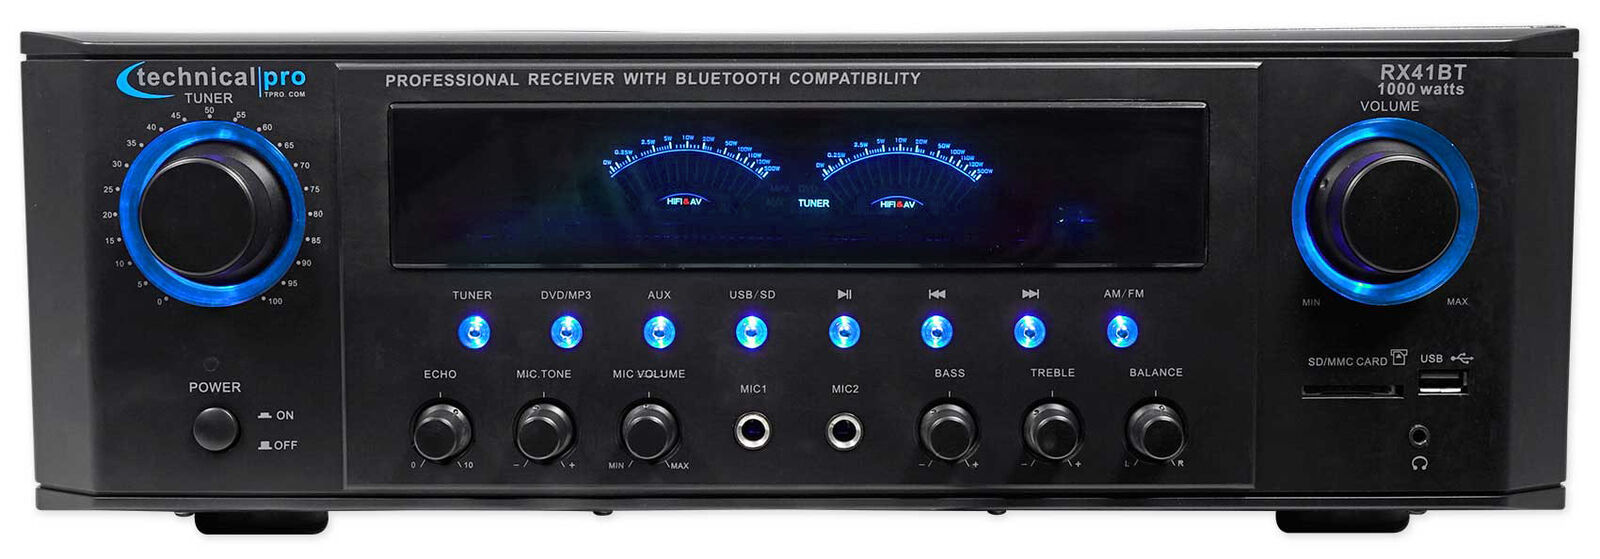 Technical Pro RX45BT Hybrid Pro Amplifier Receiver w Blautooth USB SD+Remote